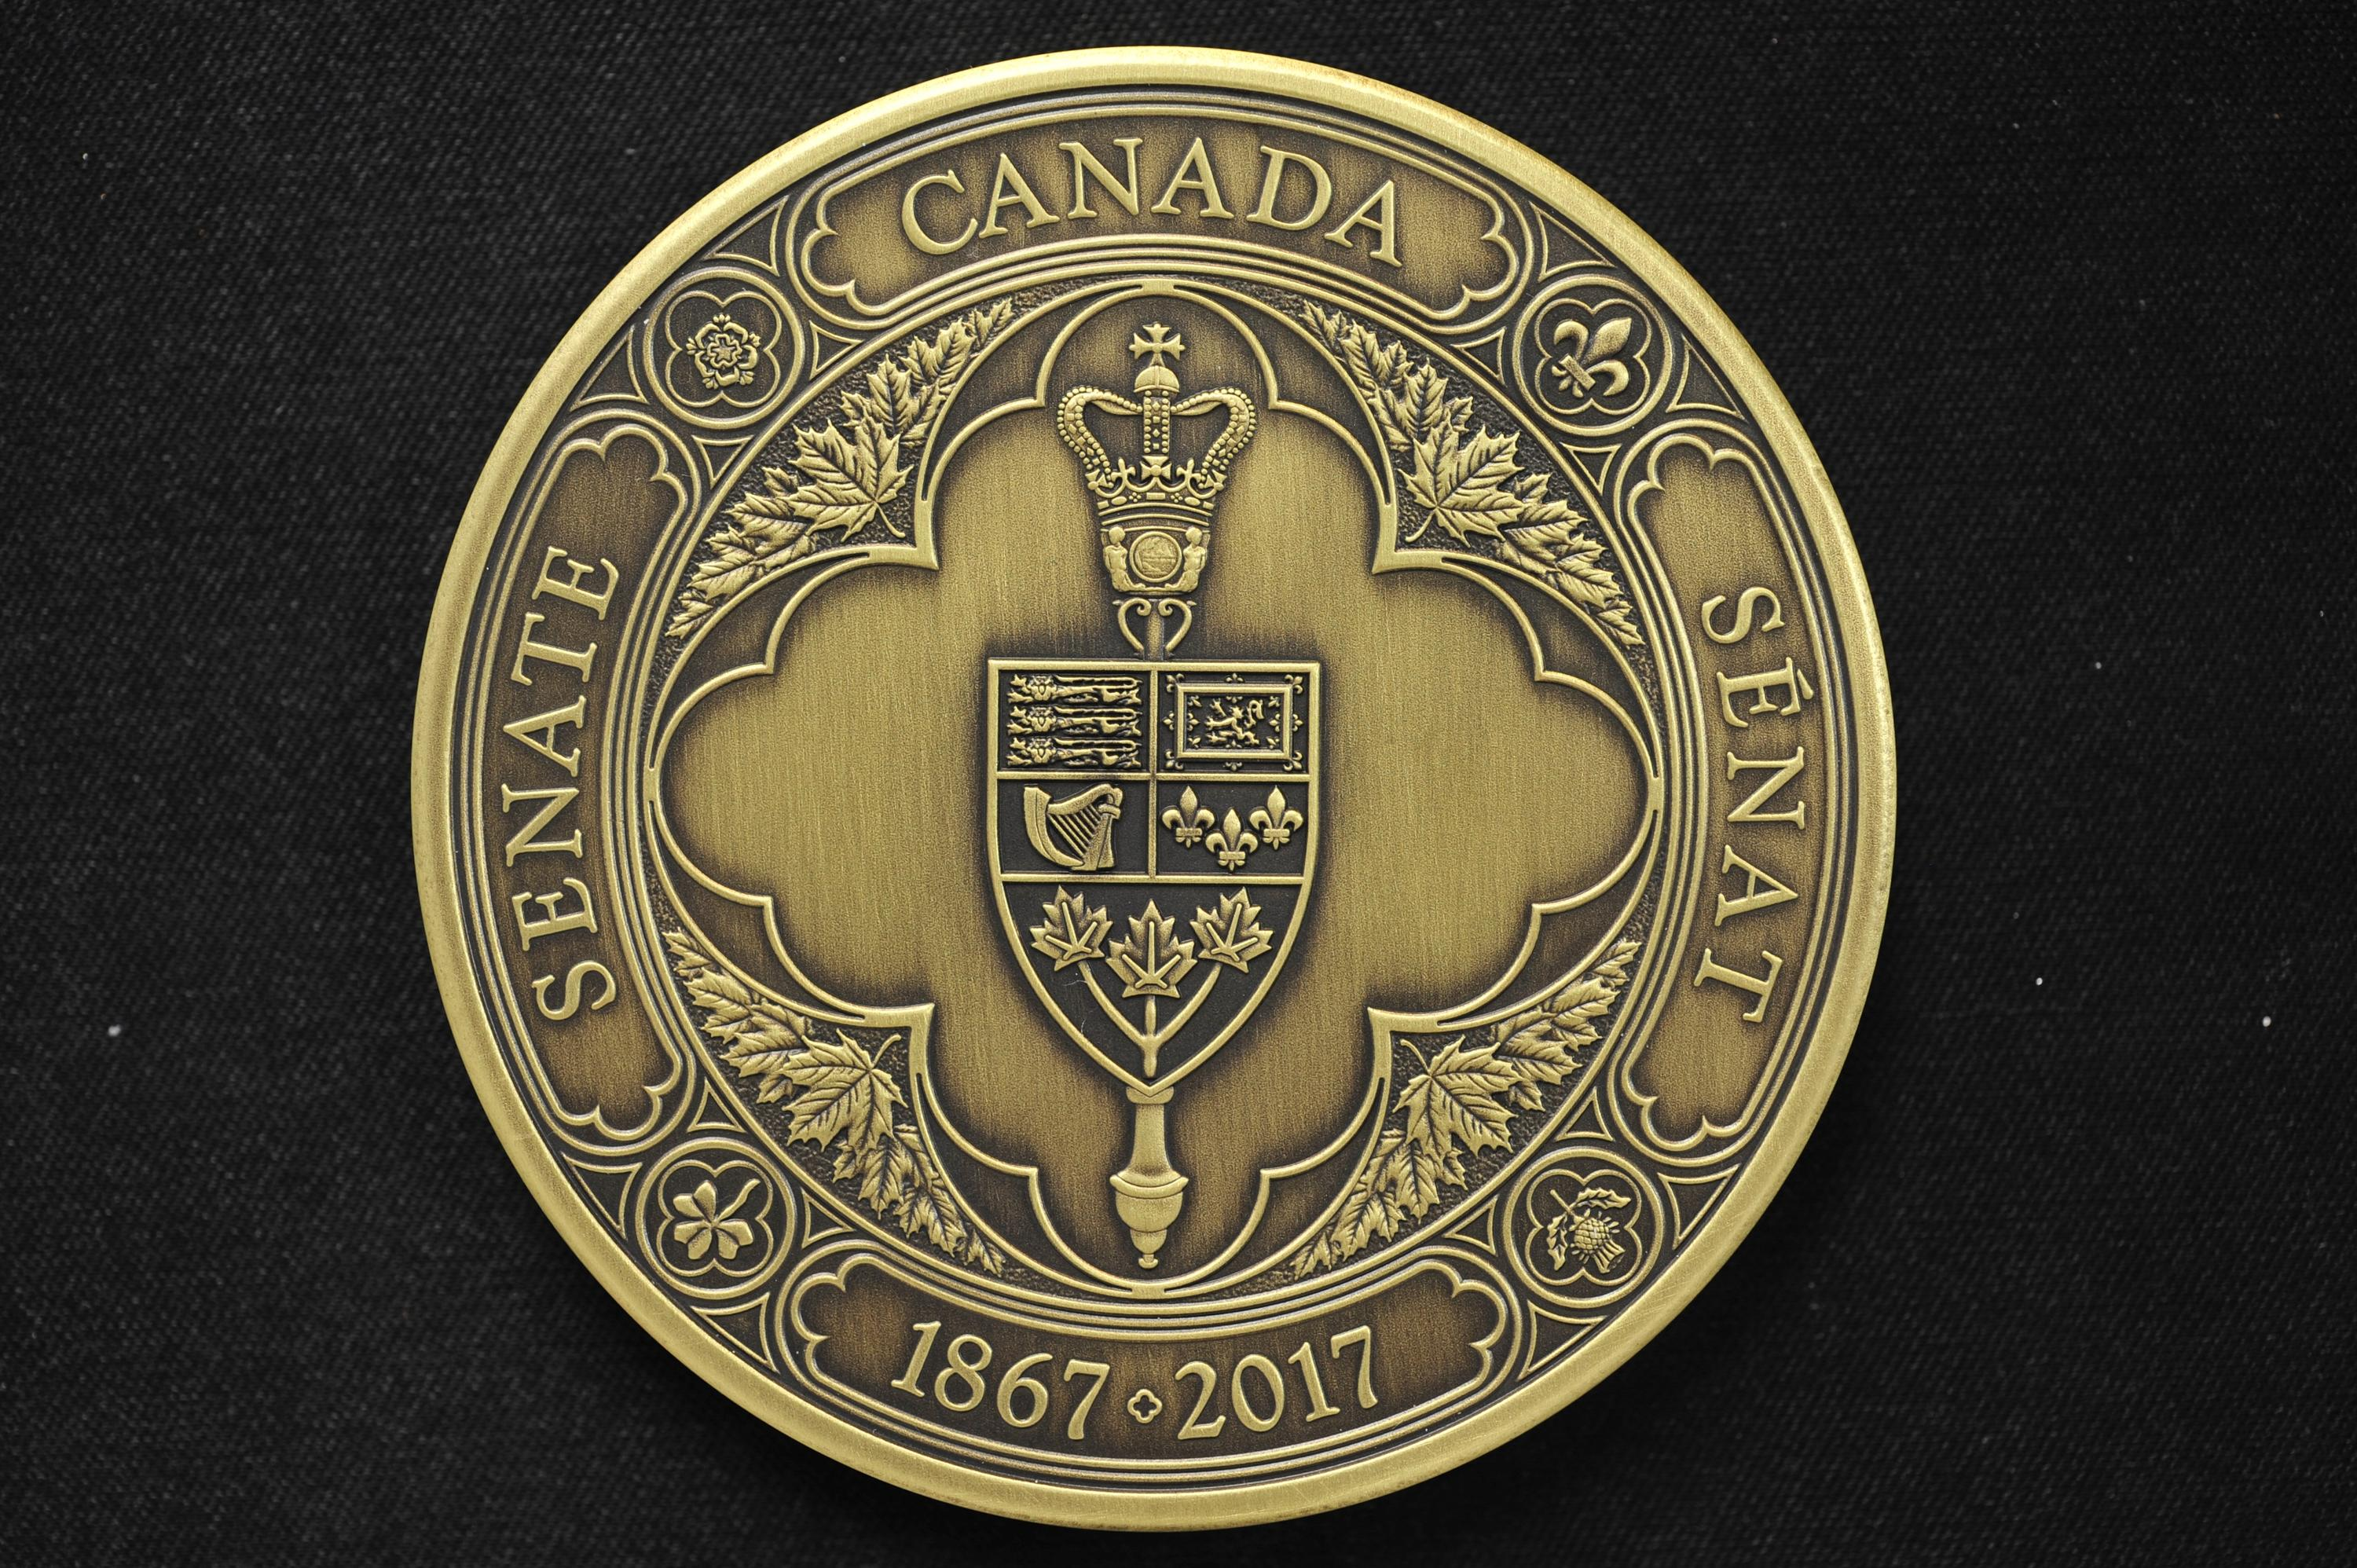 Senate 150th Anniversary Medal